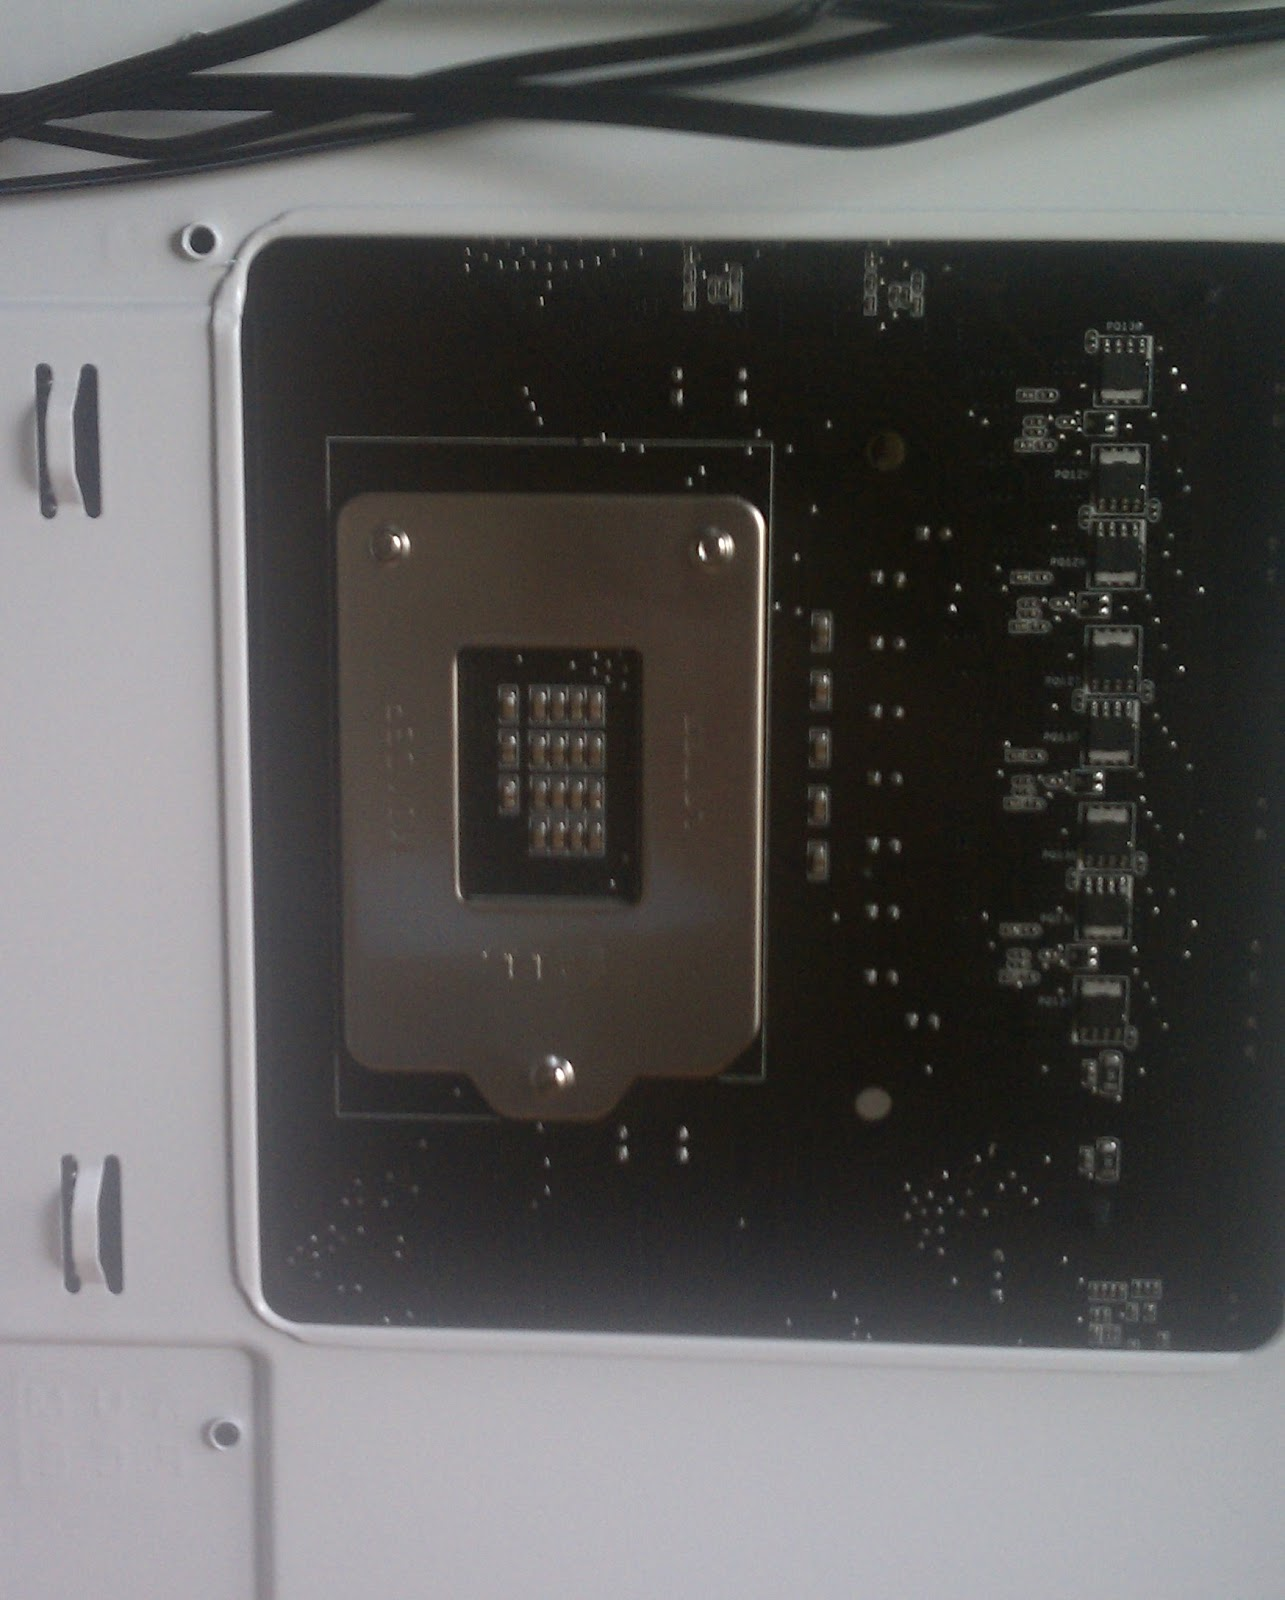 2) there is a cpu fan error